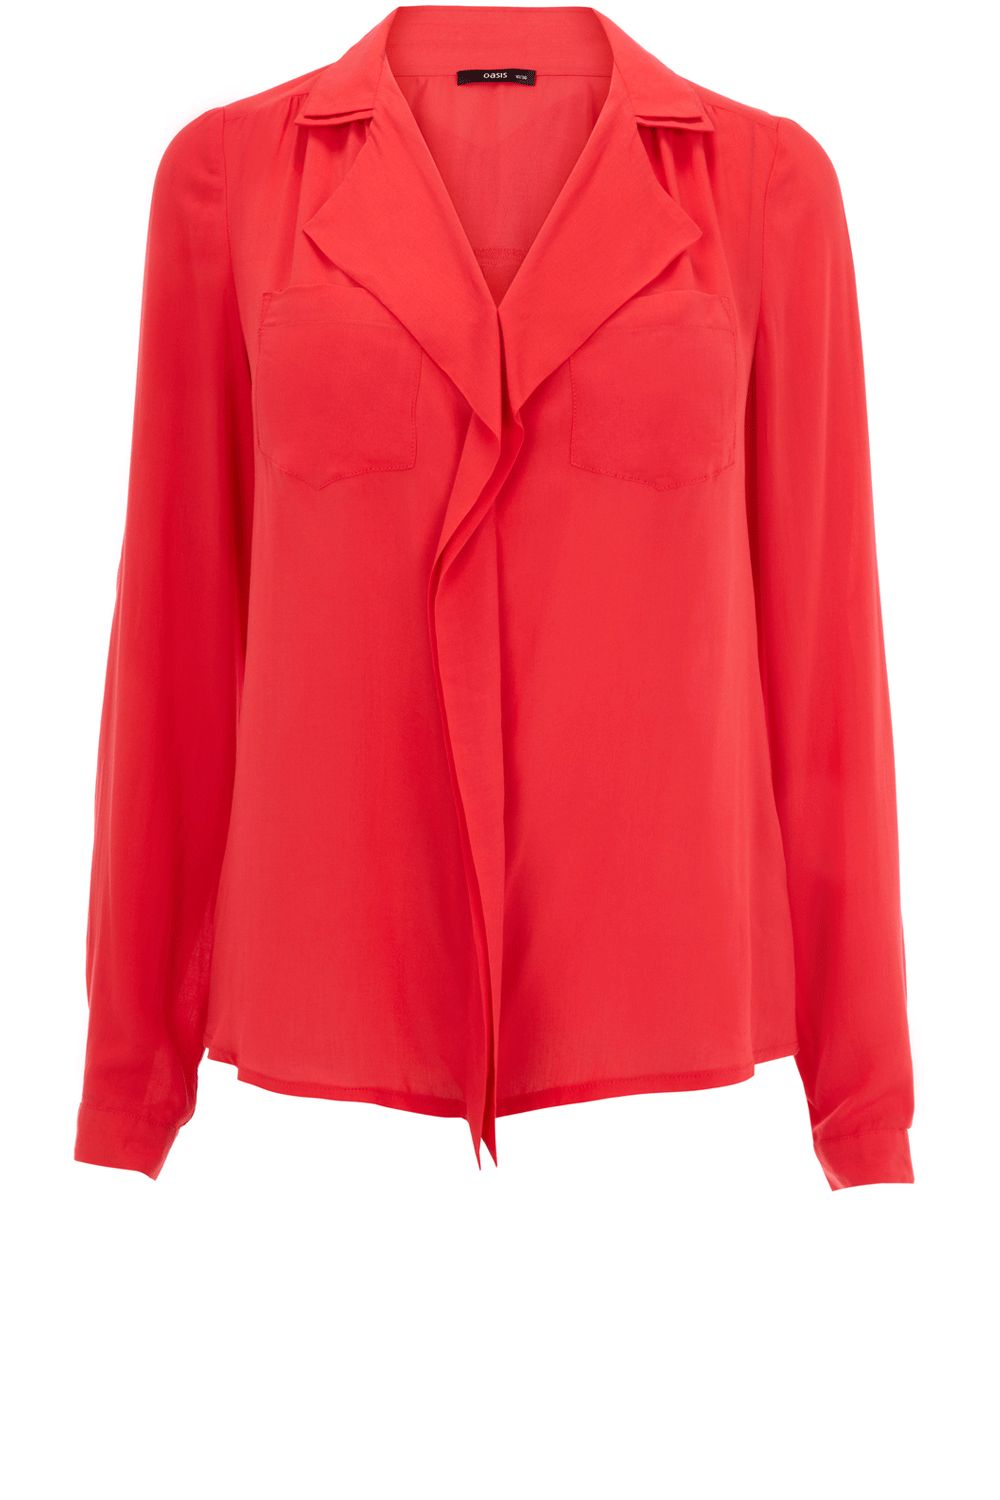 Oasis Womens Oasis Viscose blouse, Coral 171630243 product image